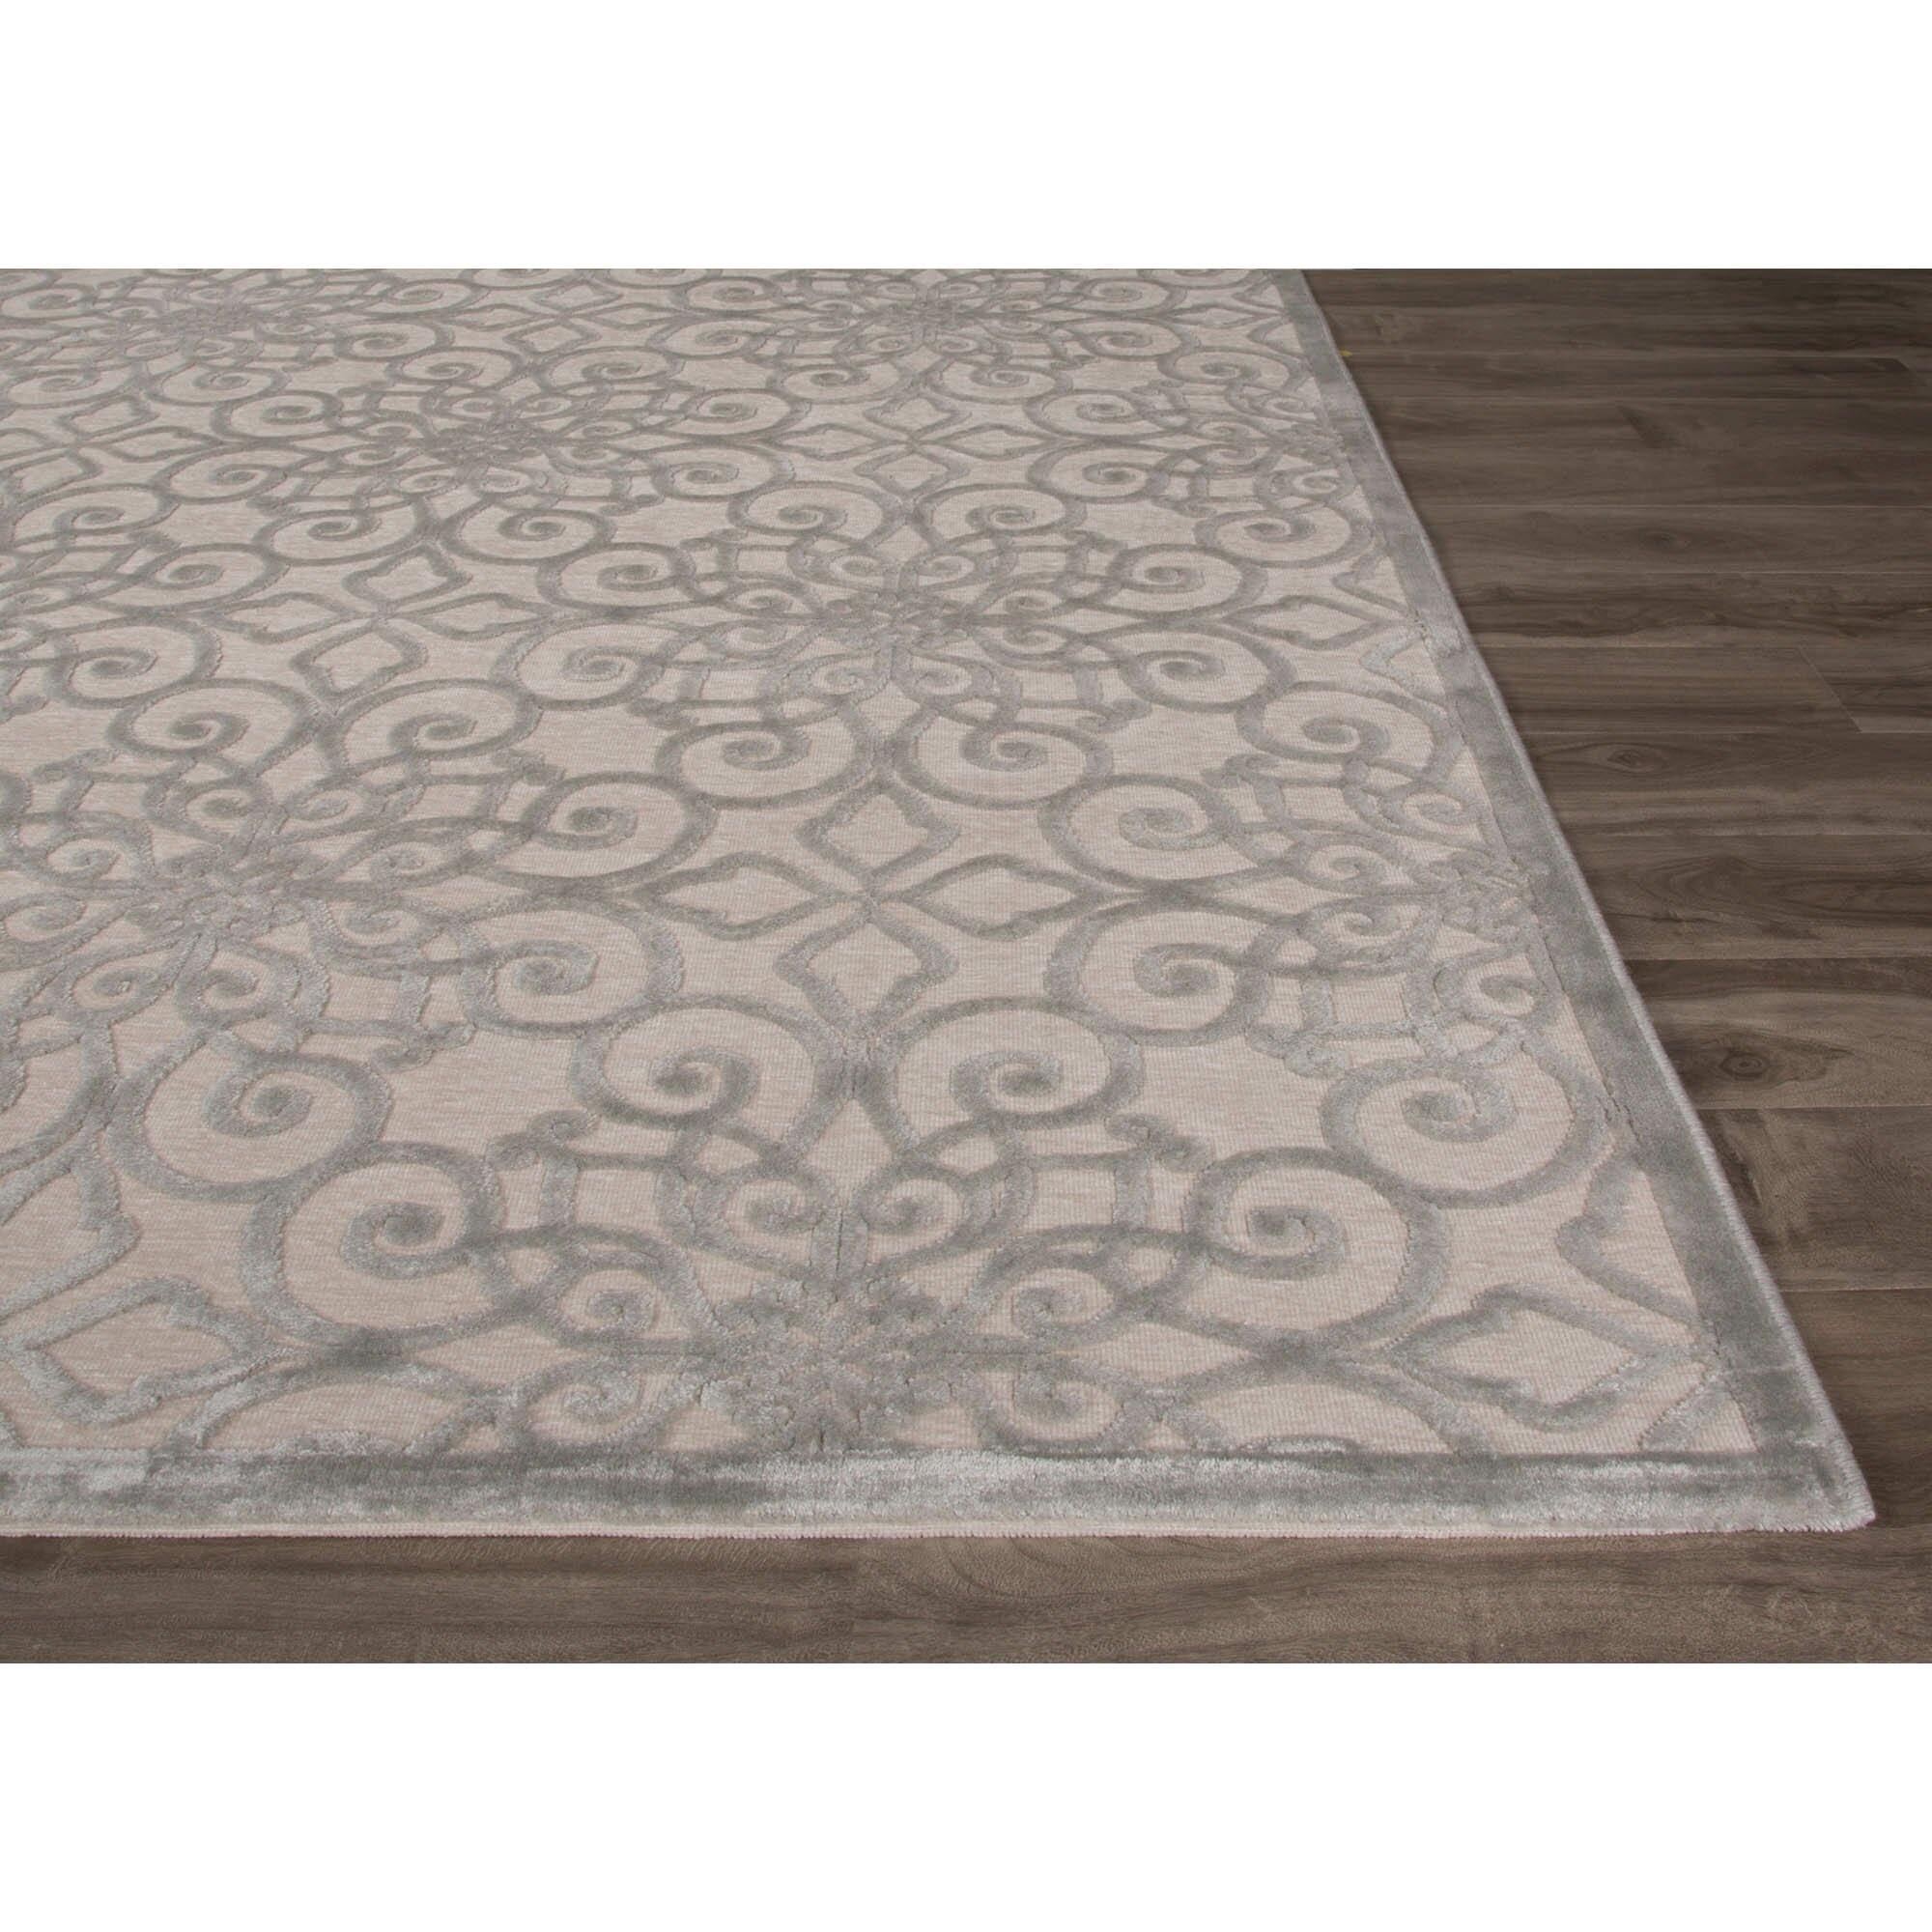 Jaipurliving fables ivory gray area rug wayfair for Carpets and area rugs